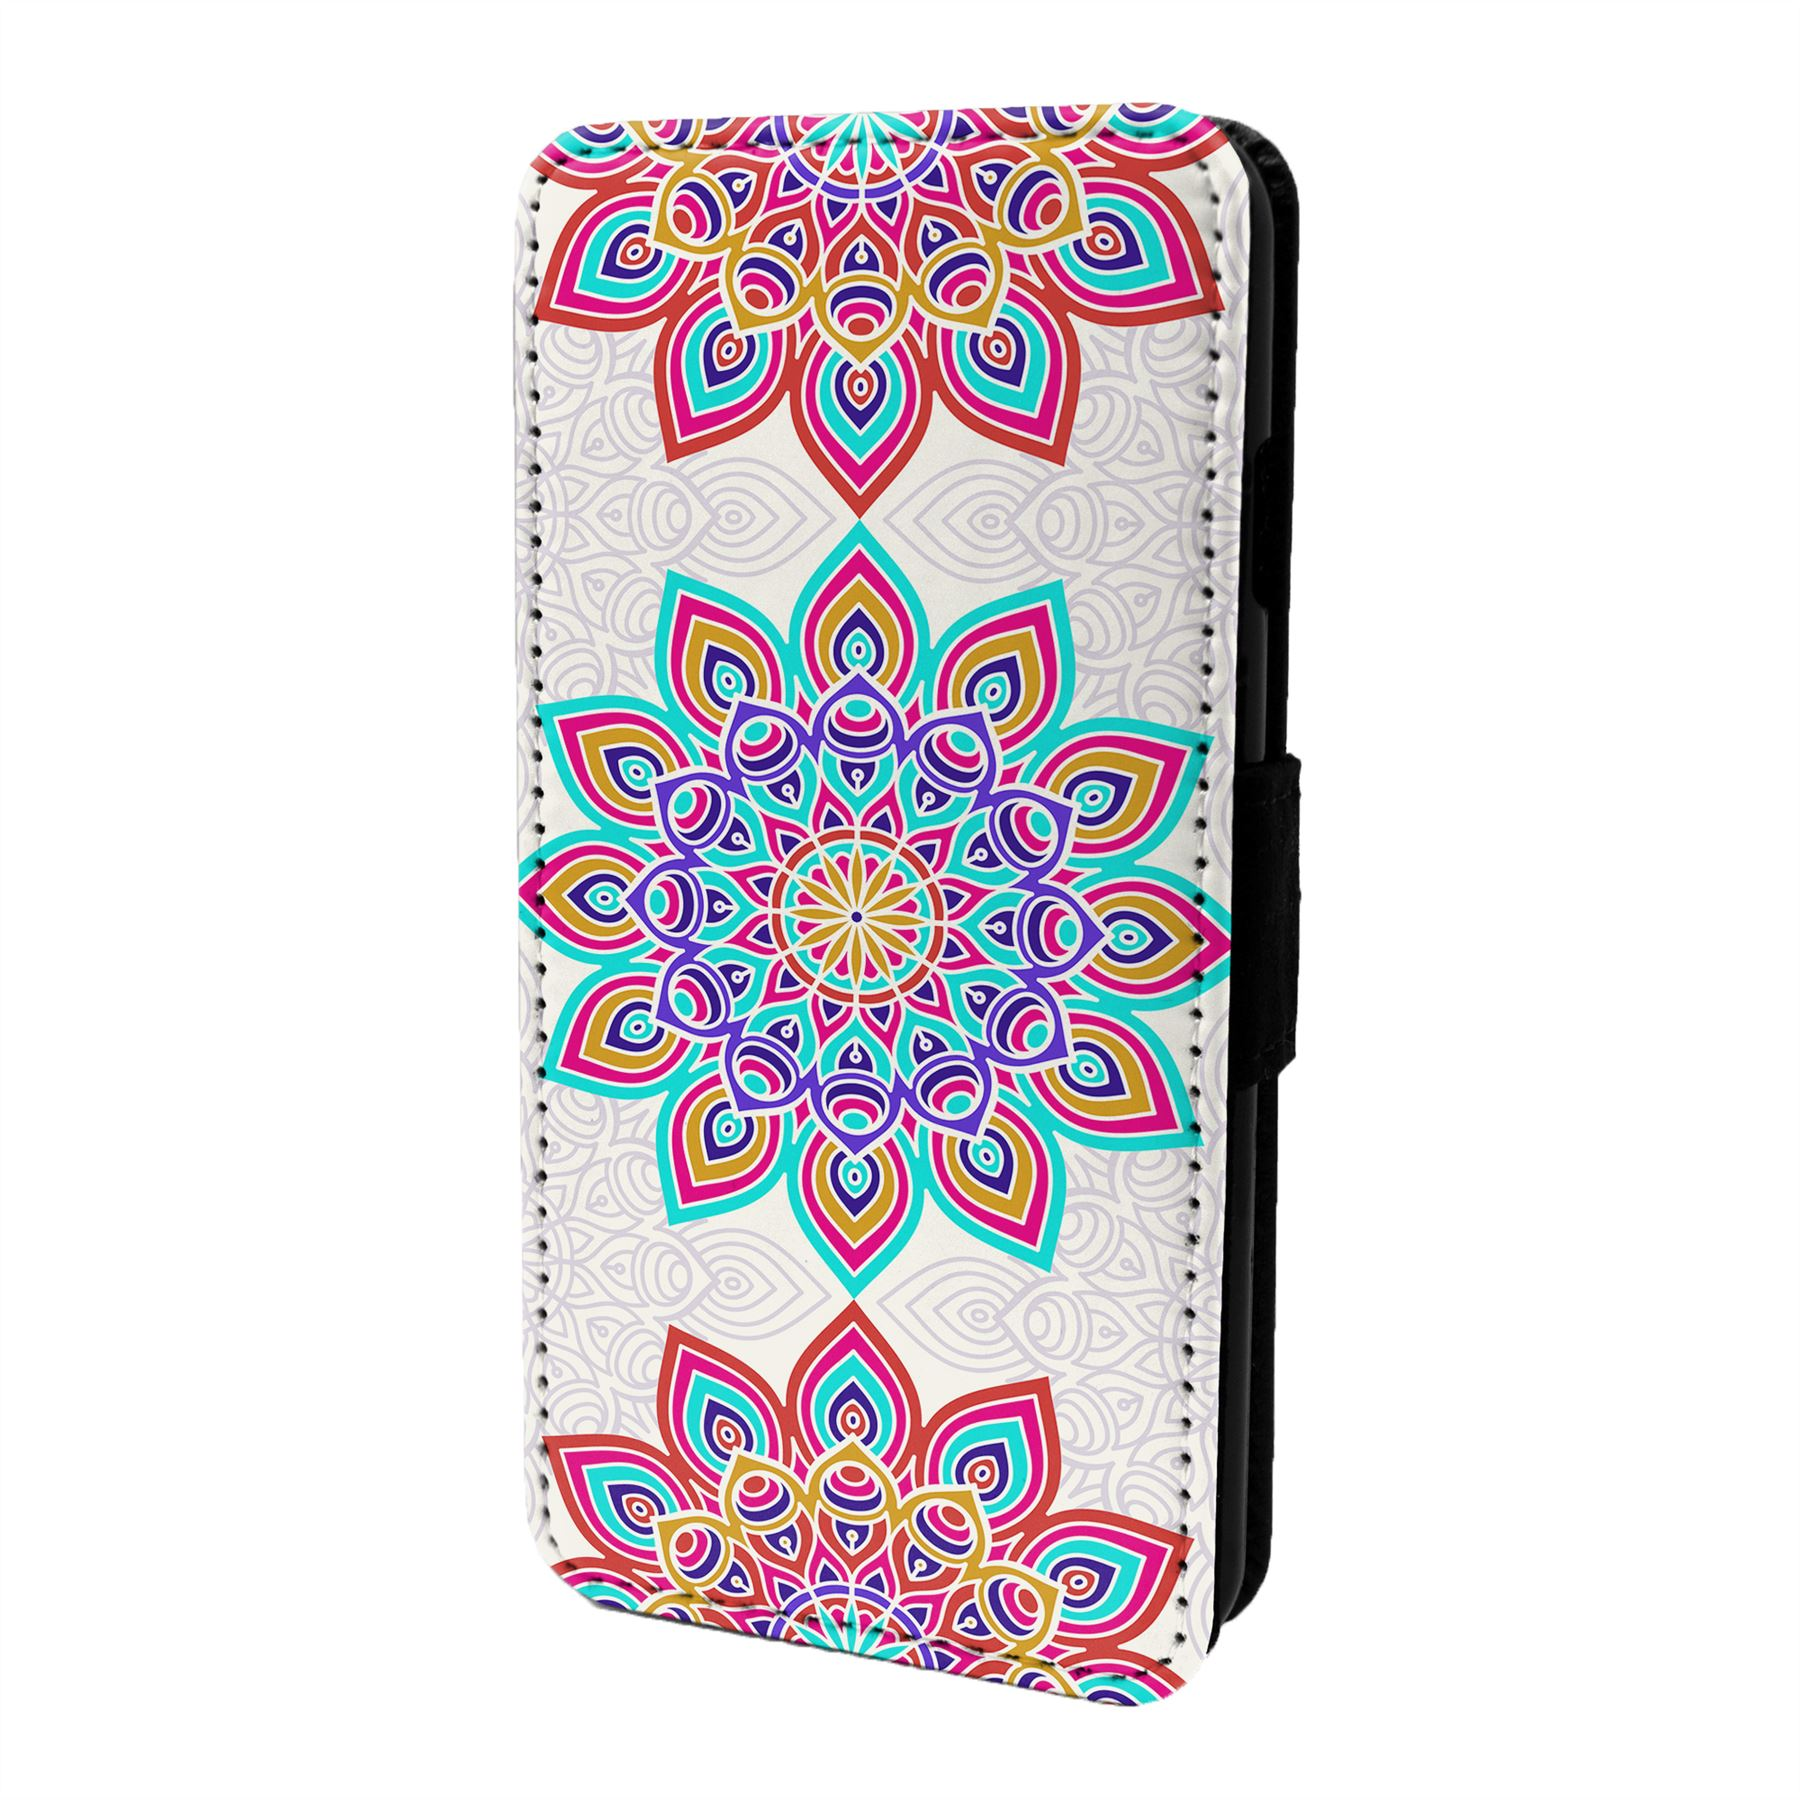 Mandala-Marroqui-Estampado-Funda-Libro-para-Telefono-Movil-S6897